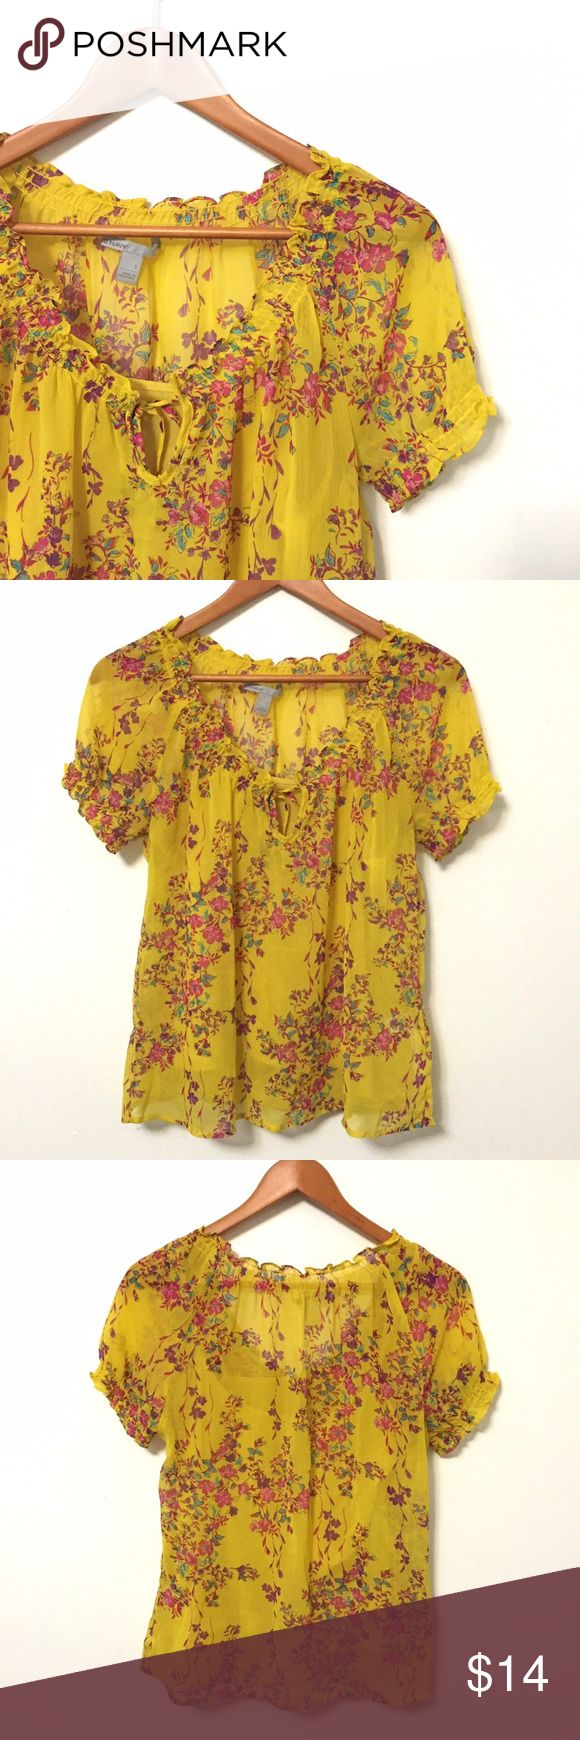 Sheer Floral Mustard Blouse with Cami A beautiful array of bright glowers pop against a golden yellow base. Sheer blouse with elastic smocking at arms and neck and a tie. Comes with a matching cami that attaches at the shoulder. In EUC.     If you have any questions or would like additional pics/measurements I'd be delighted to help. 😊 No PP or trades, please make offers with the offer button. Happy Poshing! Old Navy Tops Blouses